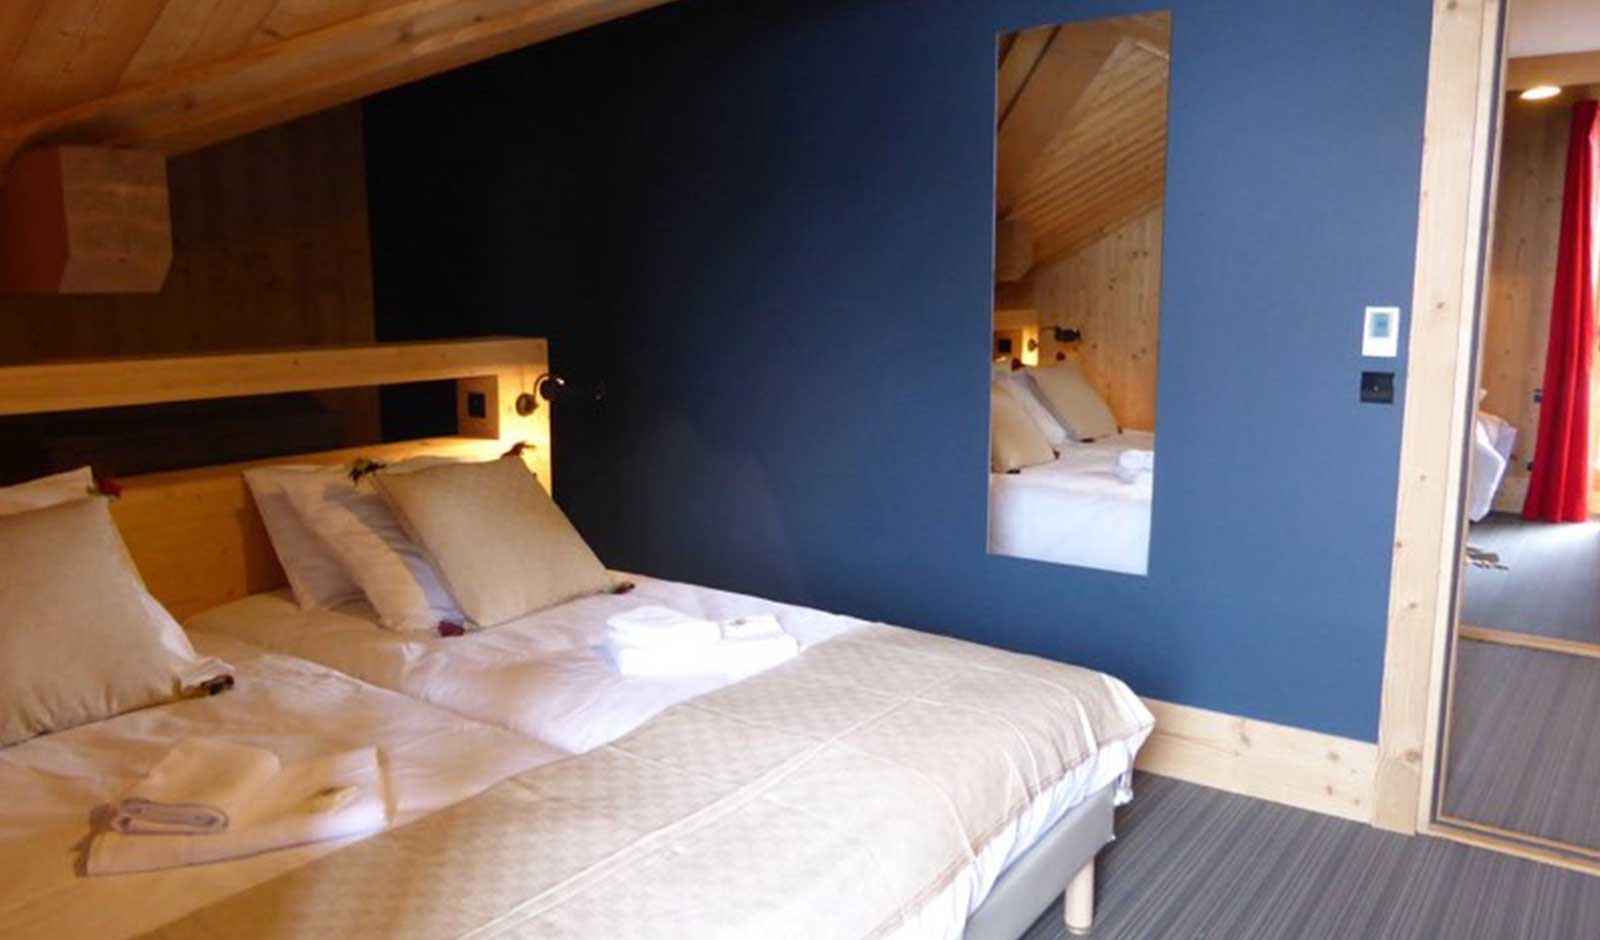 chalet-iselime-7-atelier-crea-and-co-architecte-design-project-manager-meribel-savoie